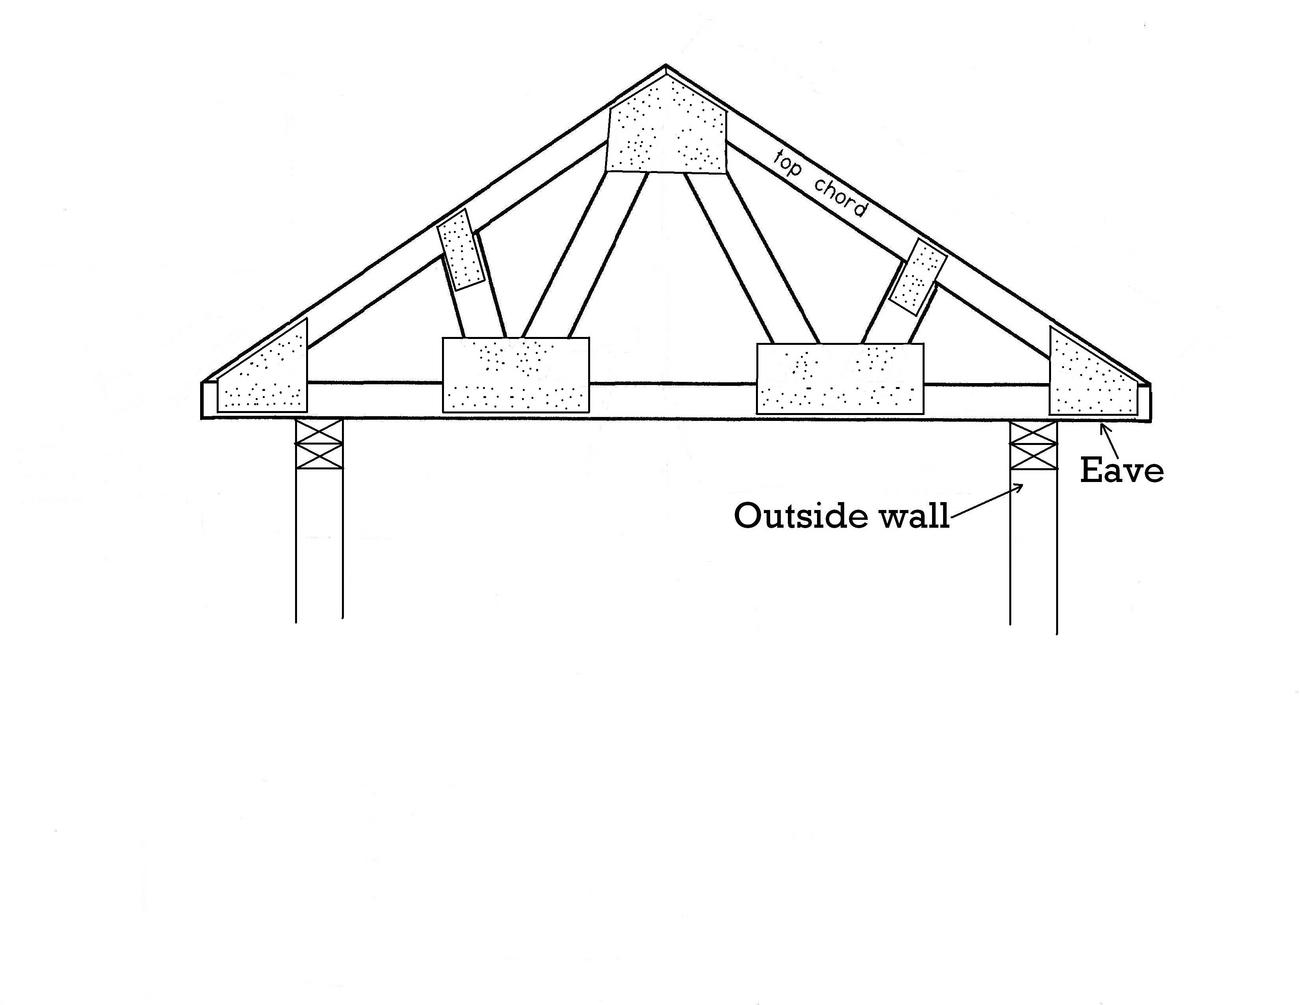 truss style diagram pioneer deh 245 wiring pin image roof trussjpg on pinterest